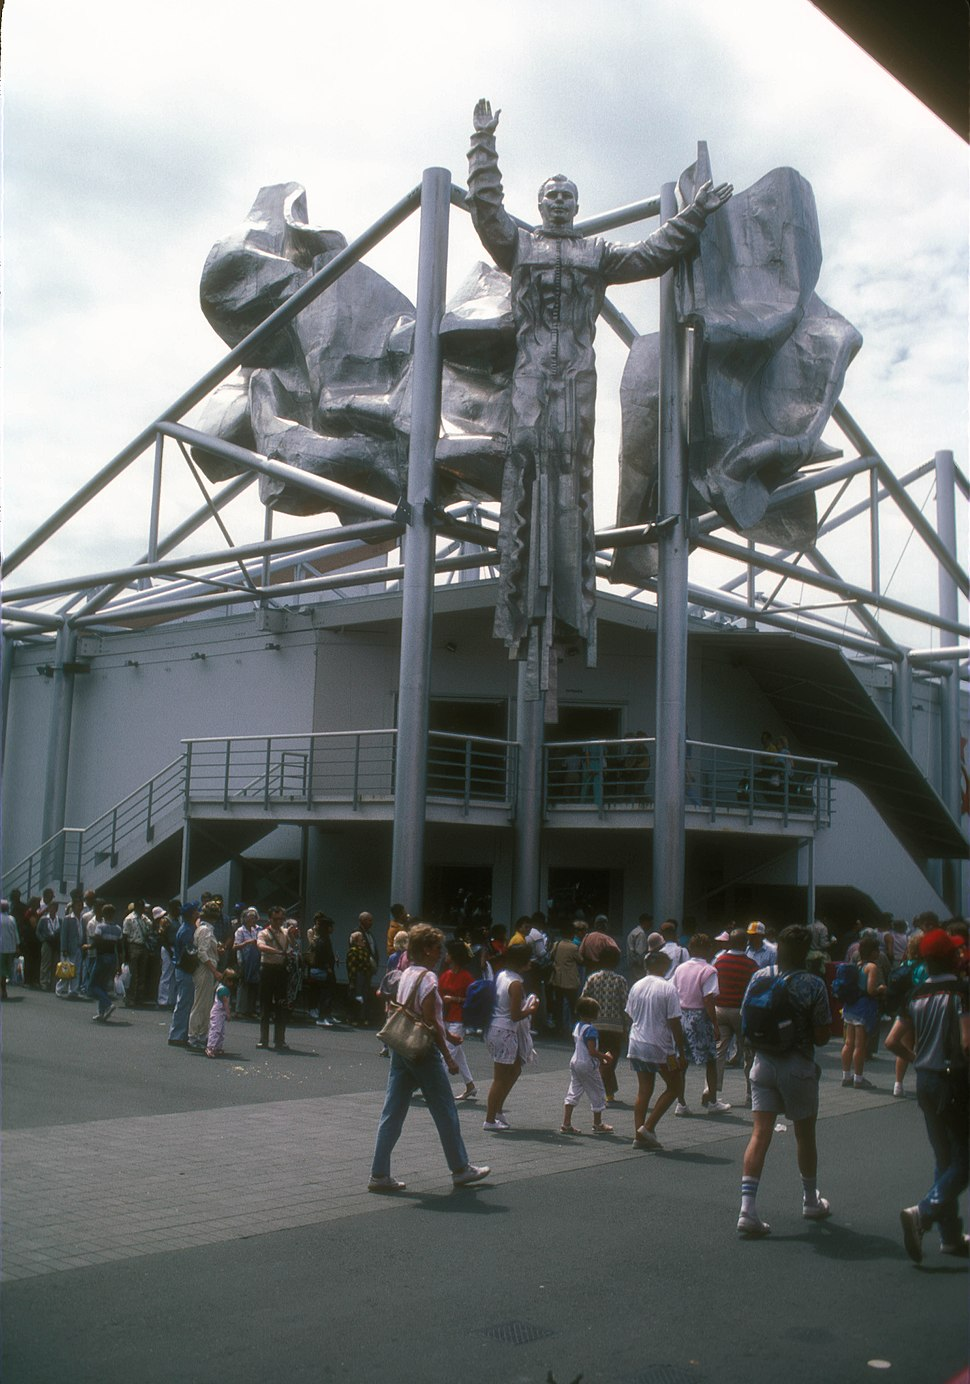 U.S.S.R. PAVILION AT EXPO 86, VANCOUVER, B.C.